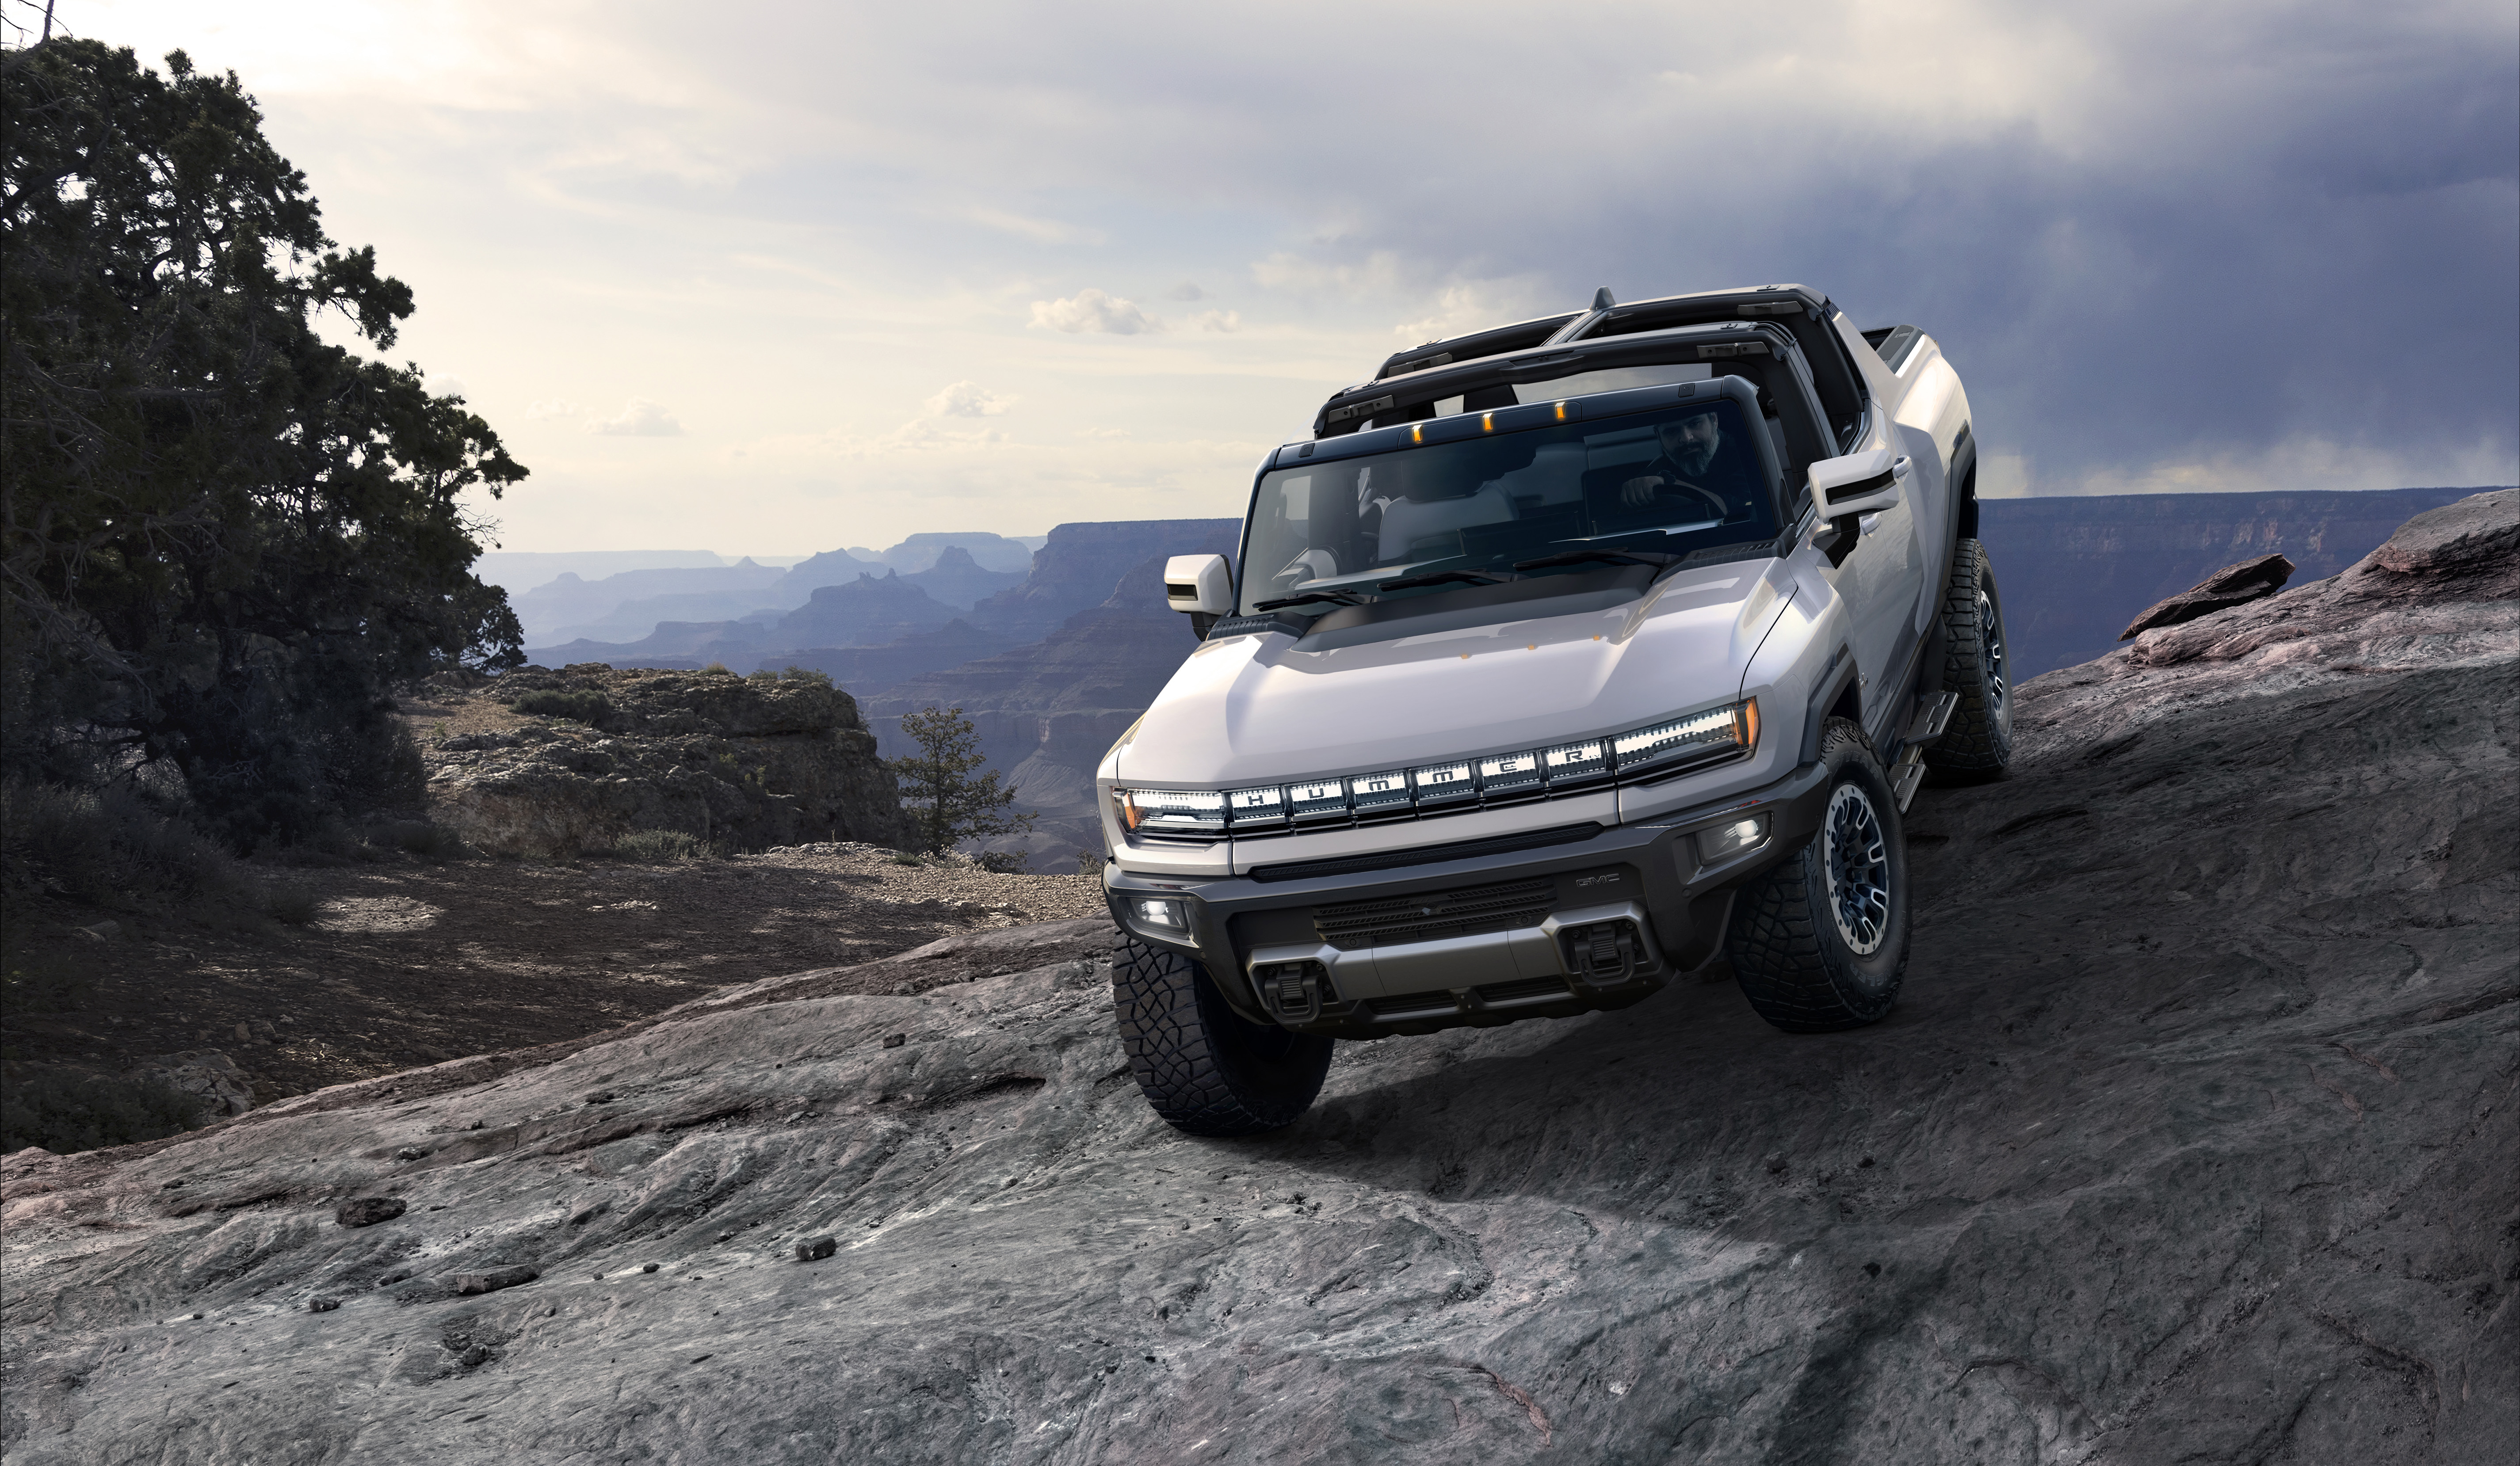 Gmc Reveals The Hummer Ev 1 000 Hp 350 Mile Range And 0 60 In Around 3 Seconds Techcrunch